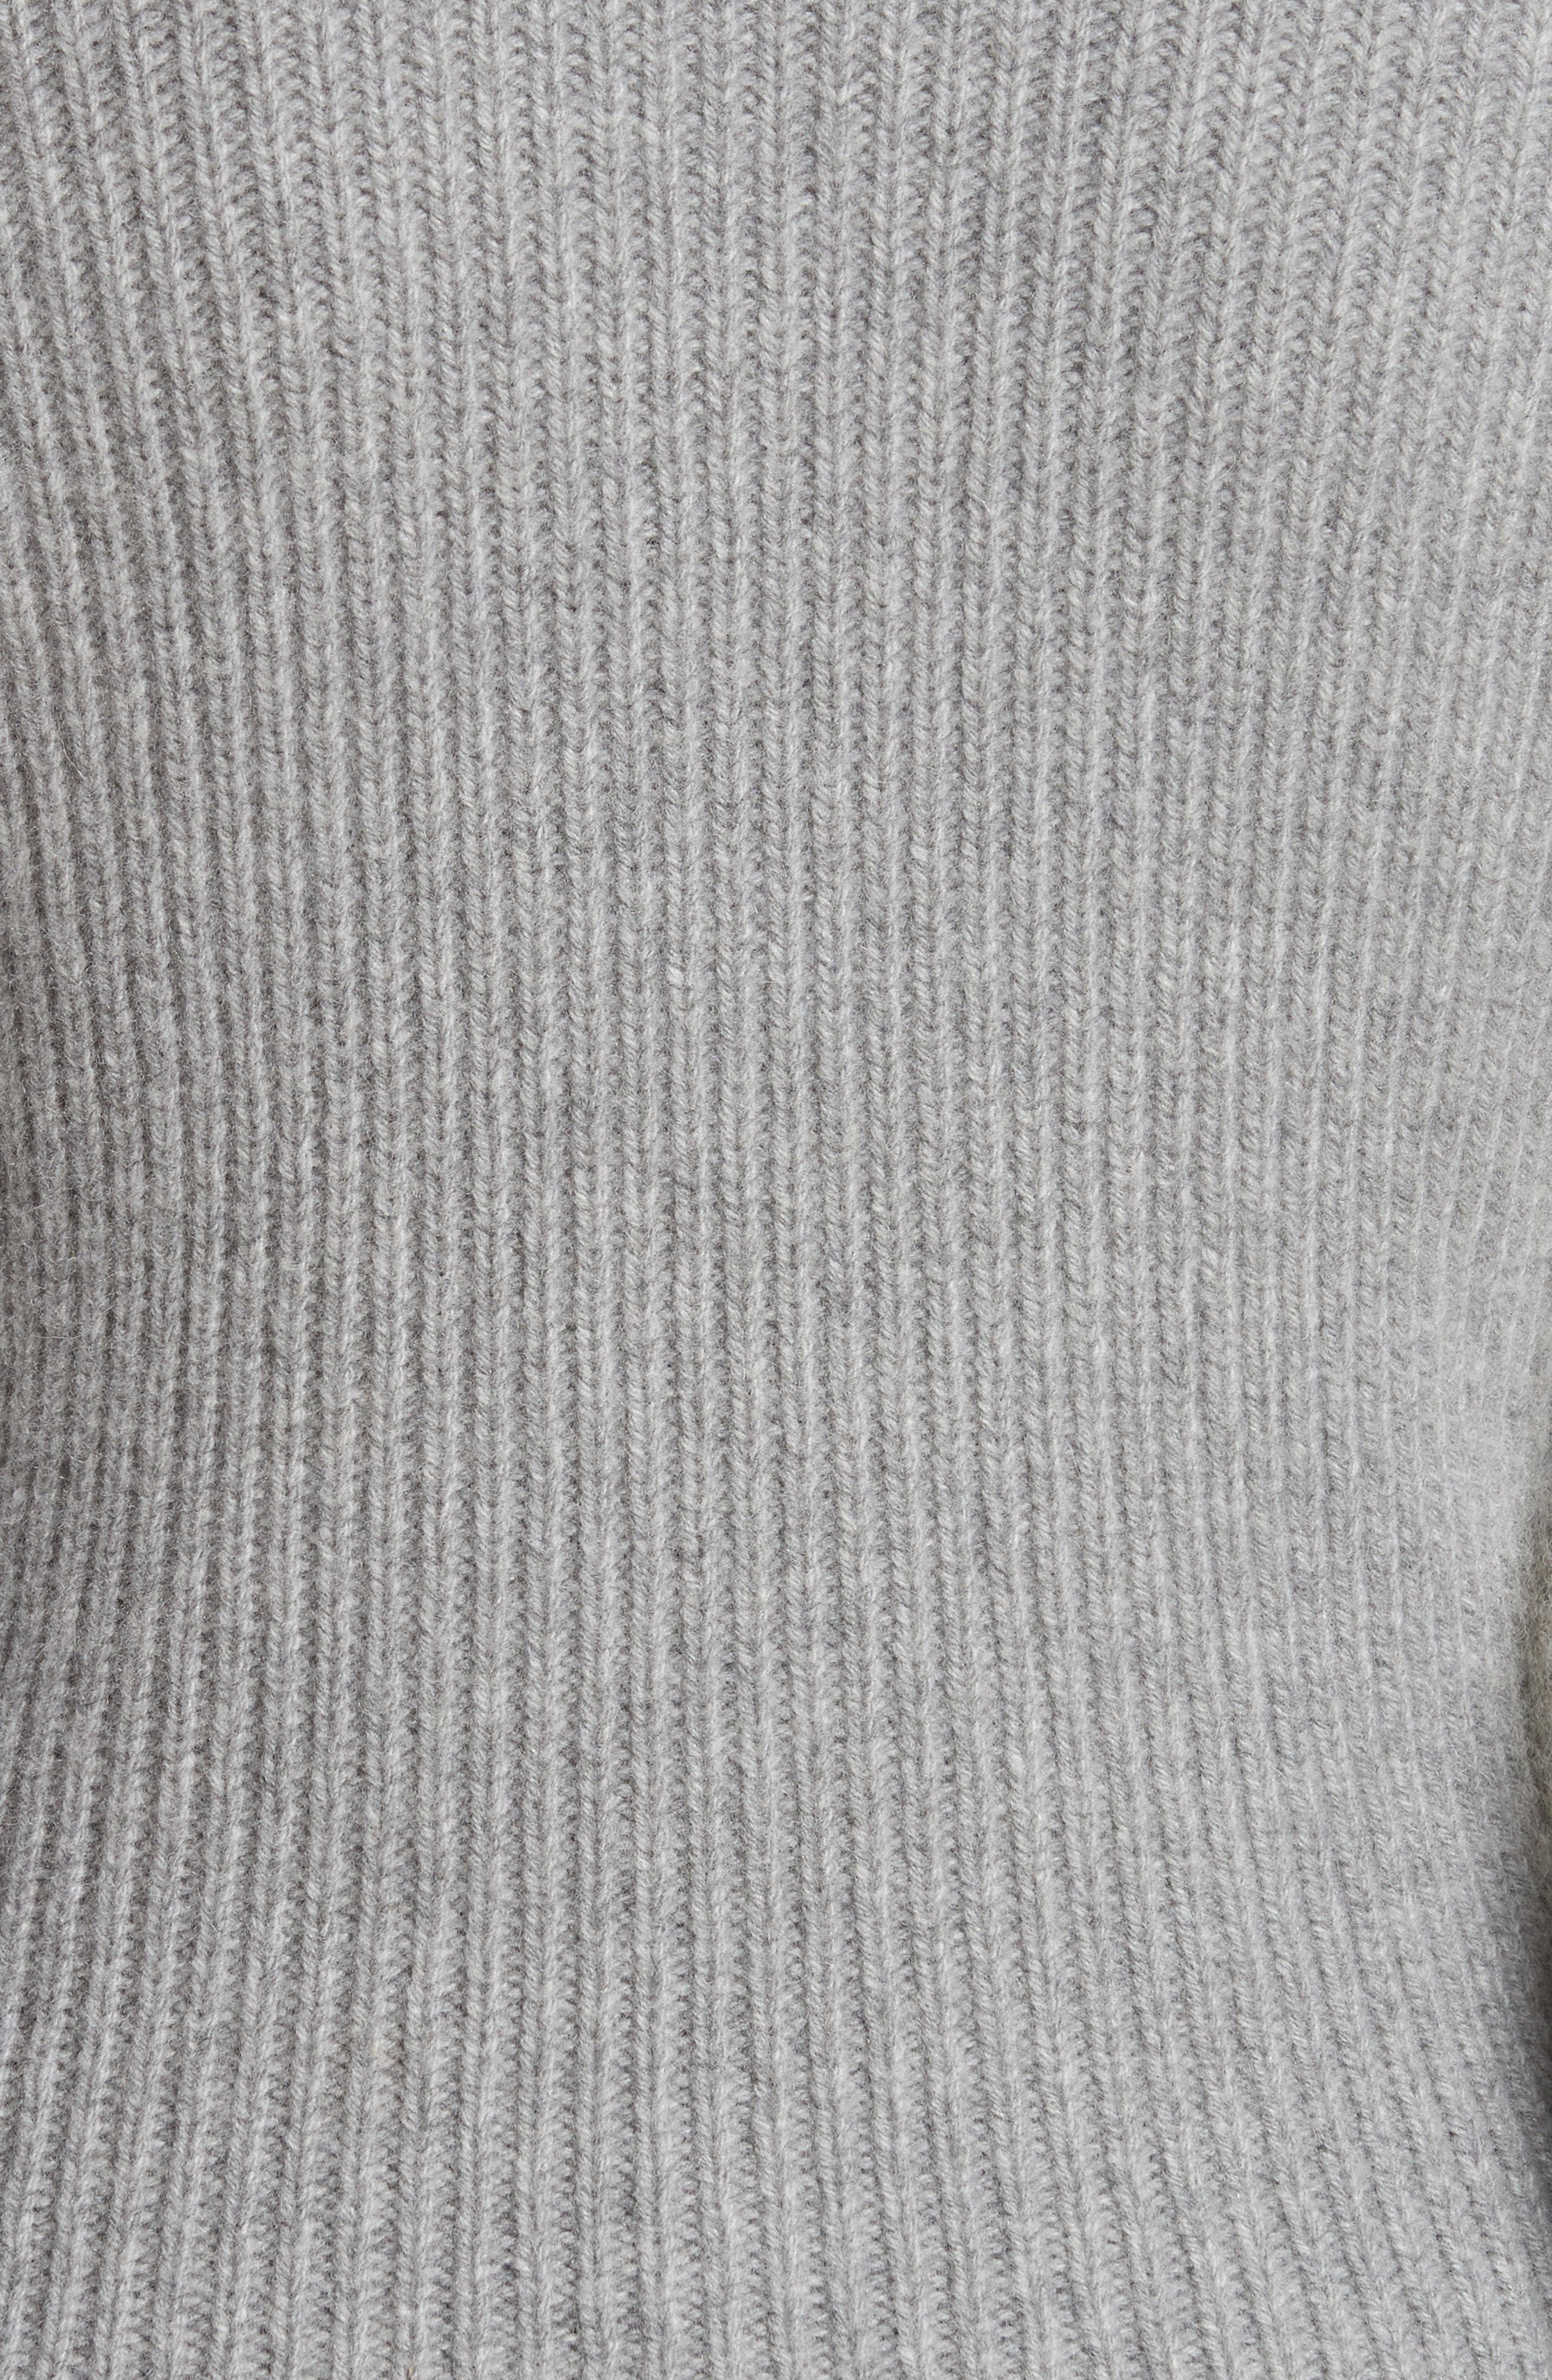 Puff Lantern Sleeve Wool & Cashmere Blend Sweater,                             Alternate thumbnail 5, color,                             020